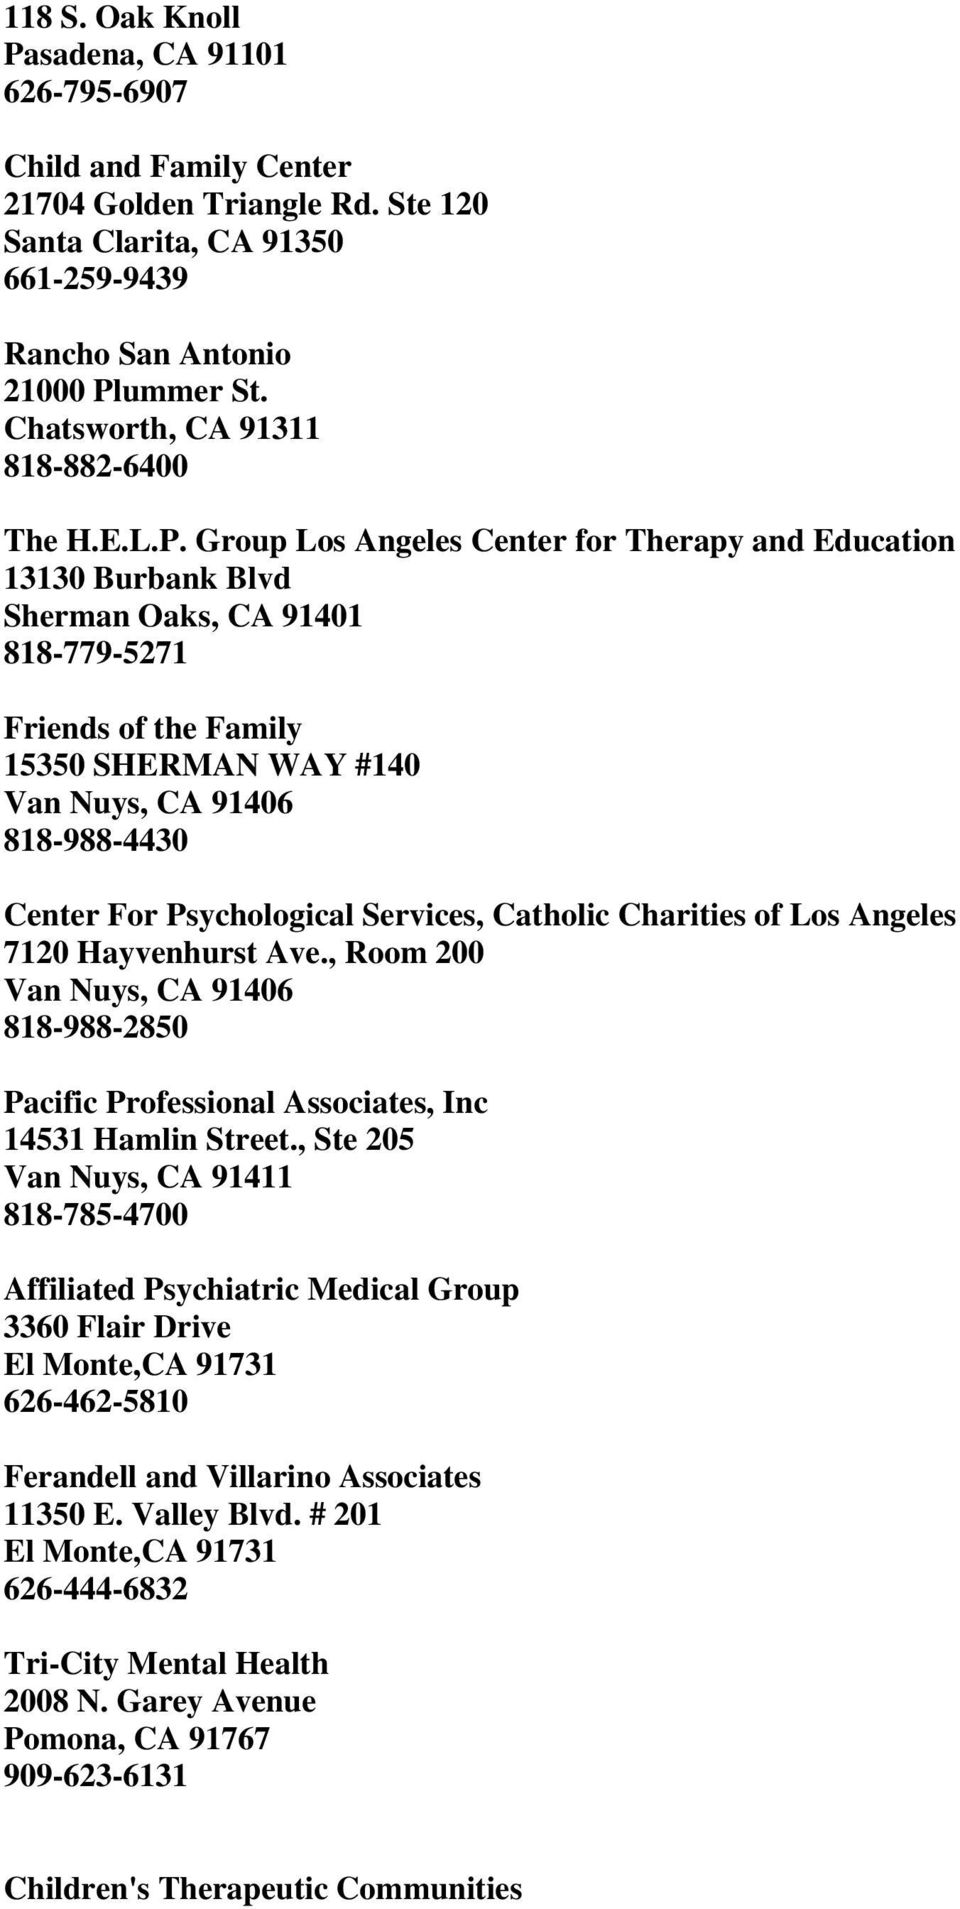 Group Los Angeles Center for Therapy and Education 13130 Burbank Blvd Sherman Oaks, CA 91401 818-779-5271 Friends of the Family 15350 SHERMAN WAY #140 Van Nuys, CA 91406 818-988-4430 Center For